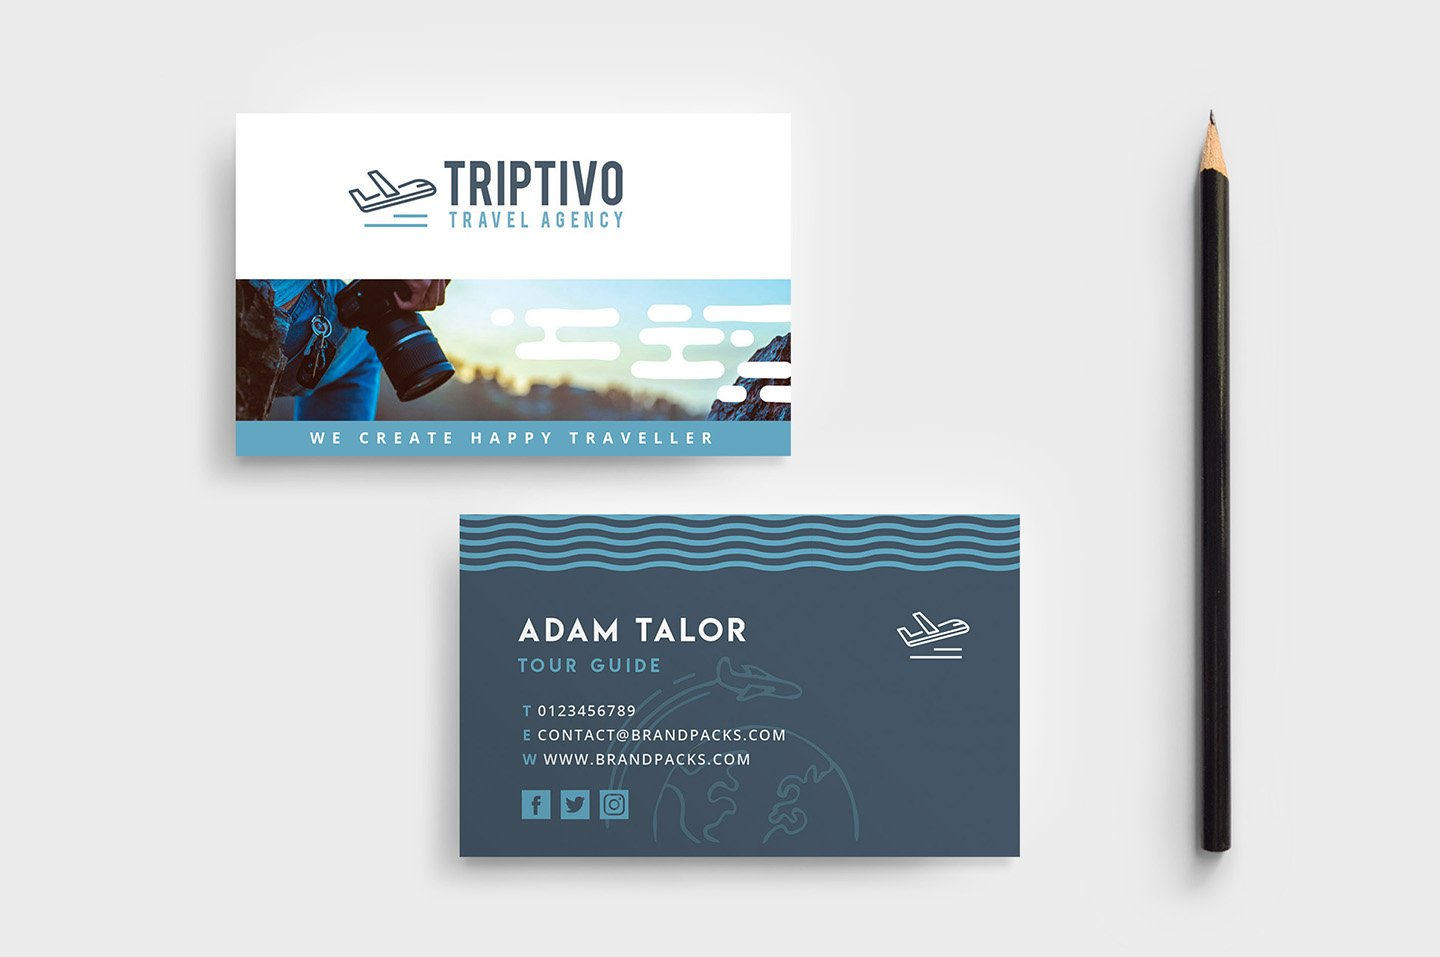 Travel Company Business Card Design ~ Business Card Templates ...